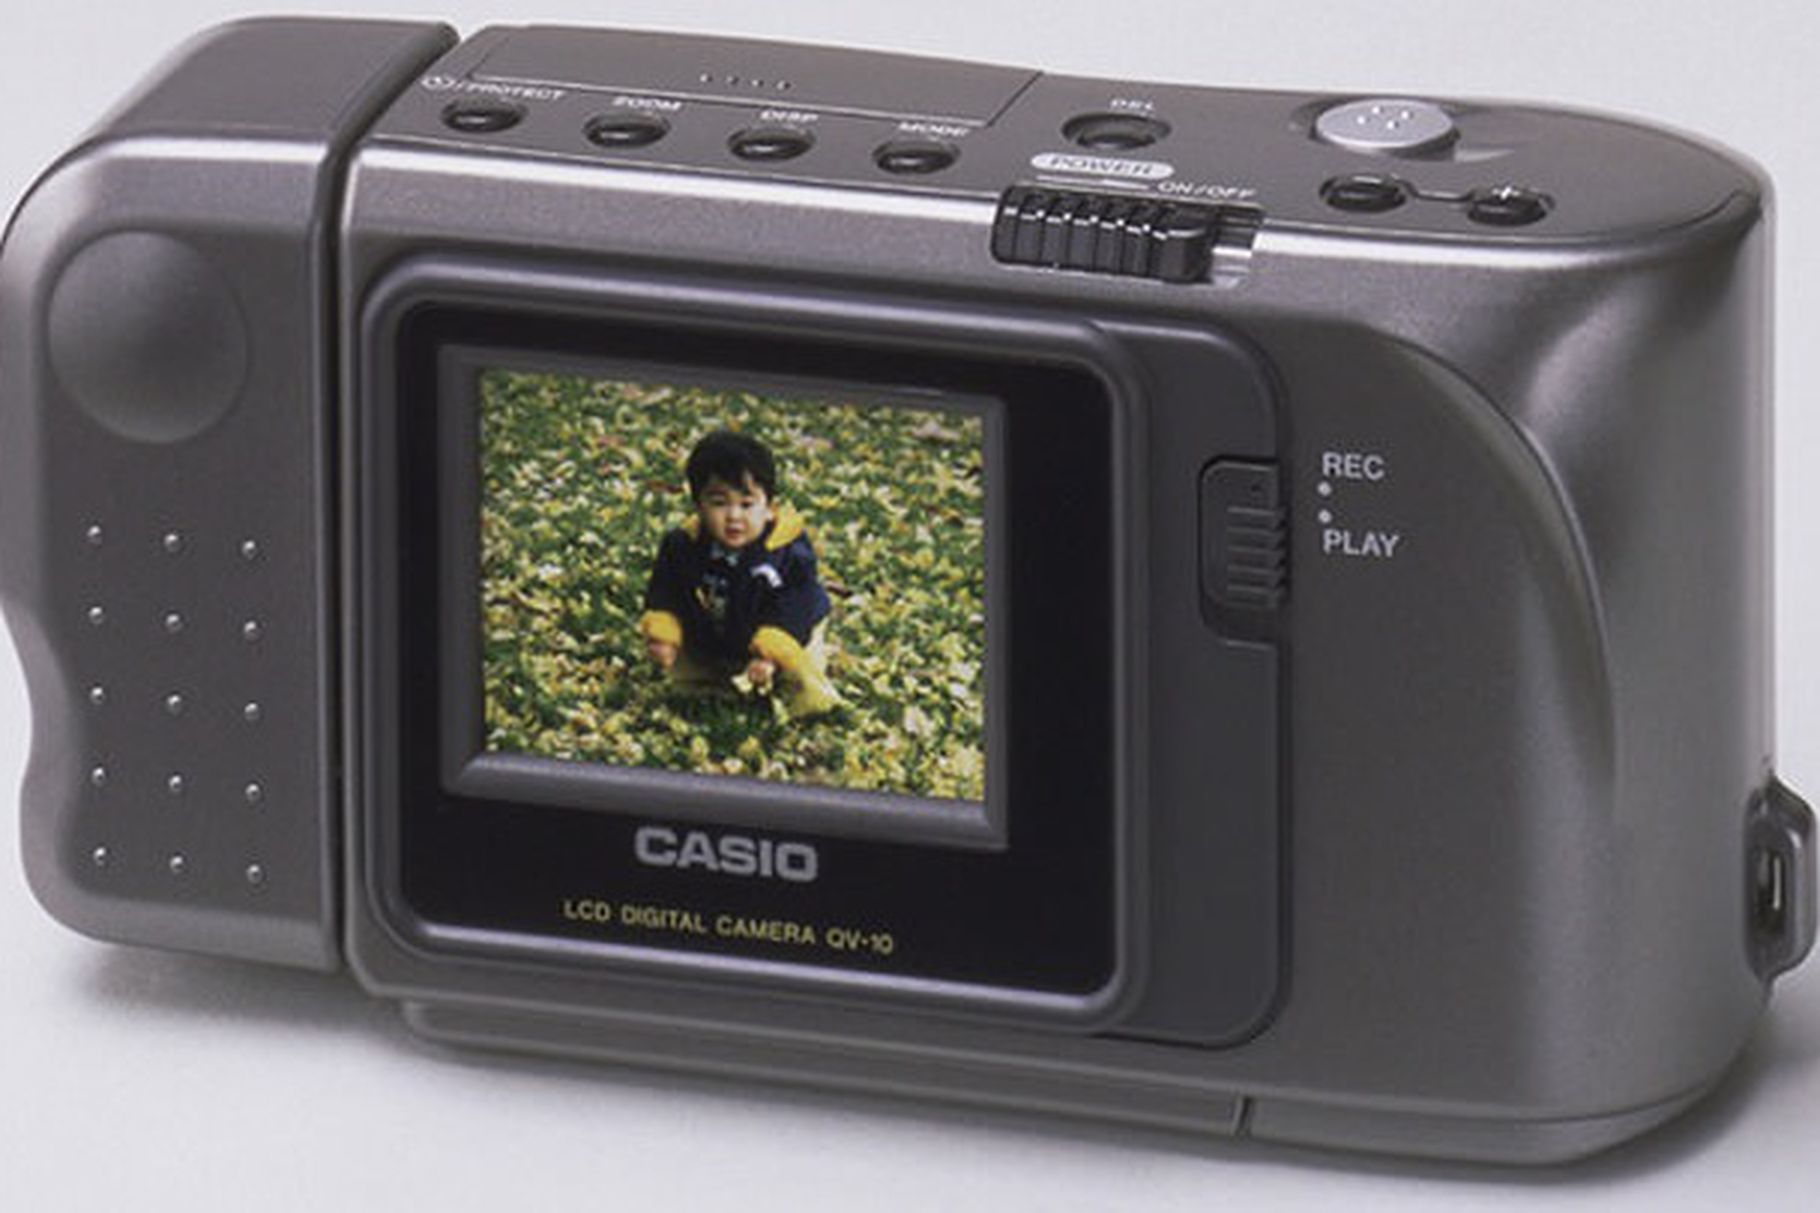 Casio digital camera 1995